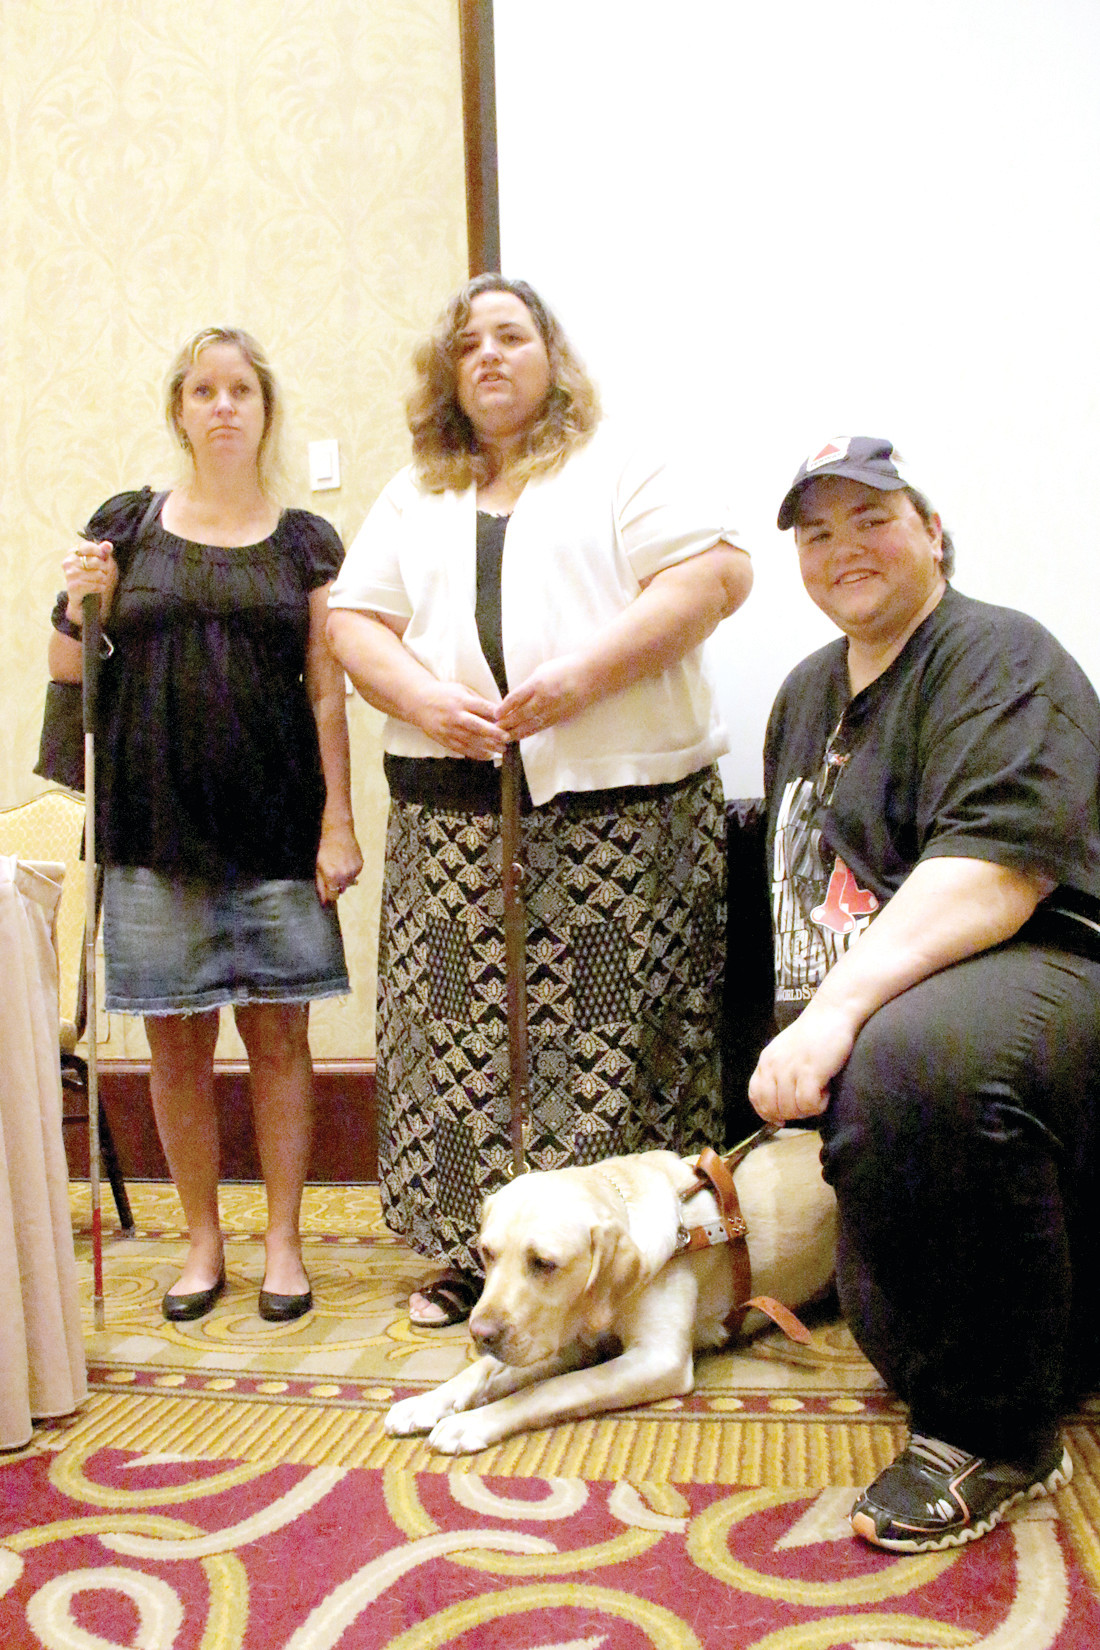 CONSIDERING A DOG: Keri Brent (left), who is legally blind, talks with Heather Schey and her twin sister Jeri about the responsibilities of a guide dog. Schey, a Warwick resident and the information and outreach coordinator at OSCIL, was born with retinitis pigmentosa and has been visually impaired since birth.